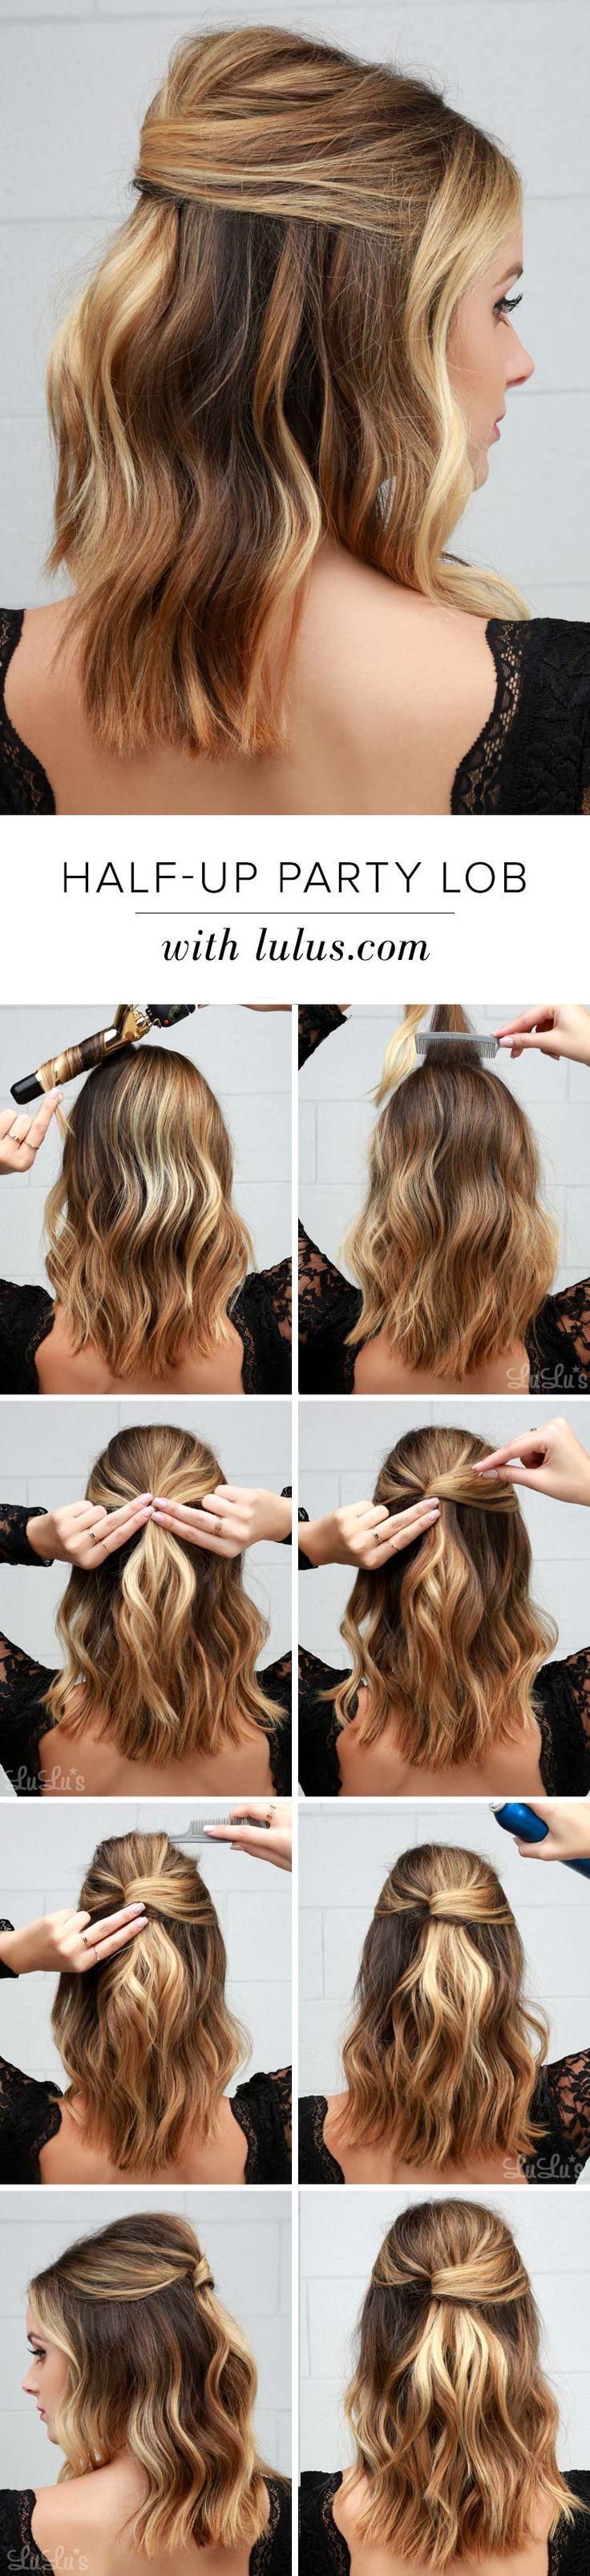 58 best Hairstyles images on Pinterest